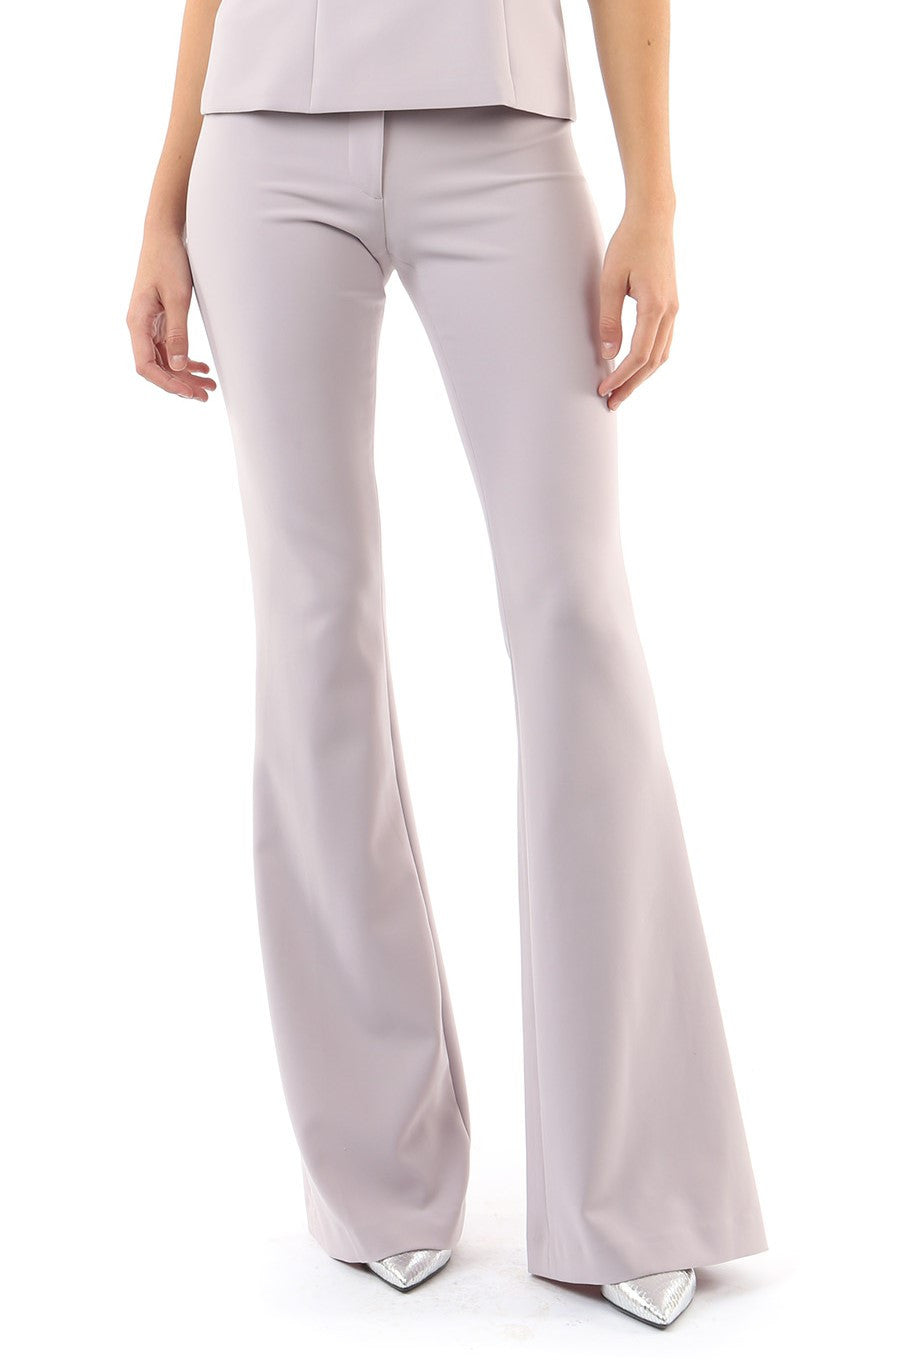 Jay Godfrey Mauve Flare Pants - Front View